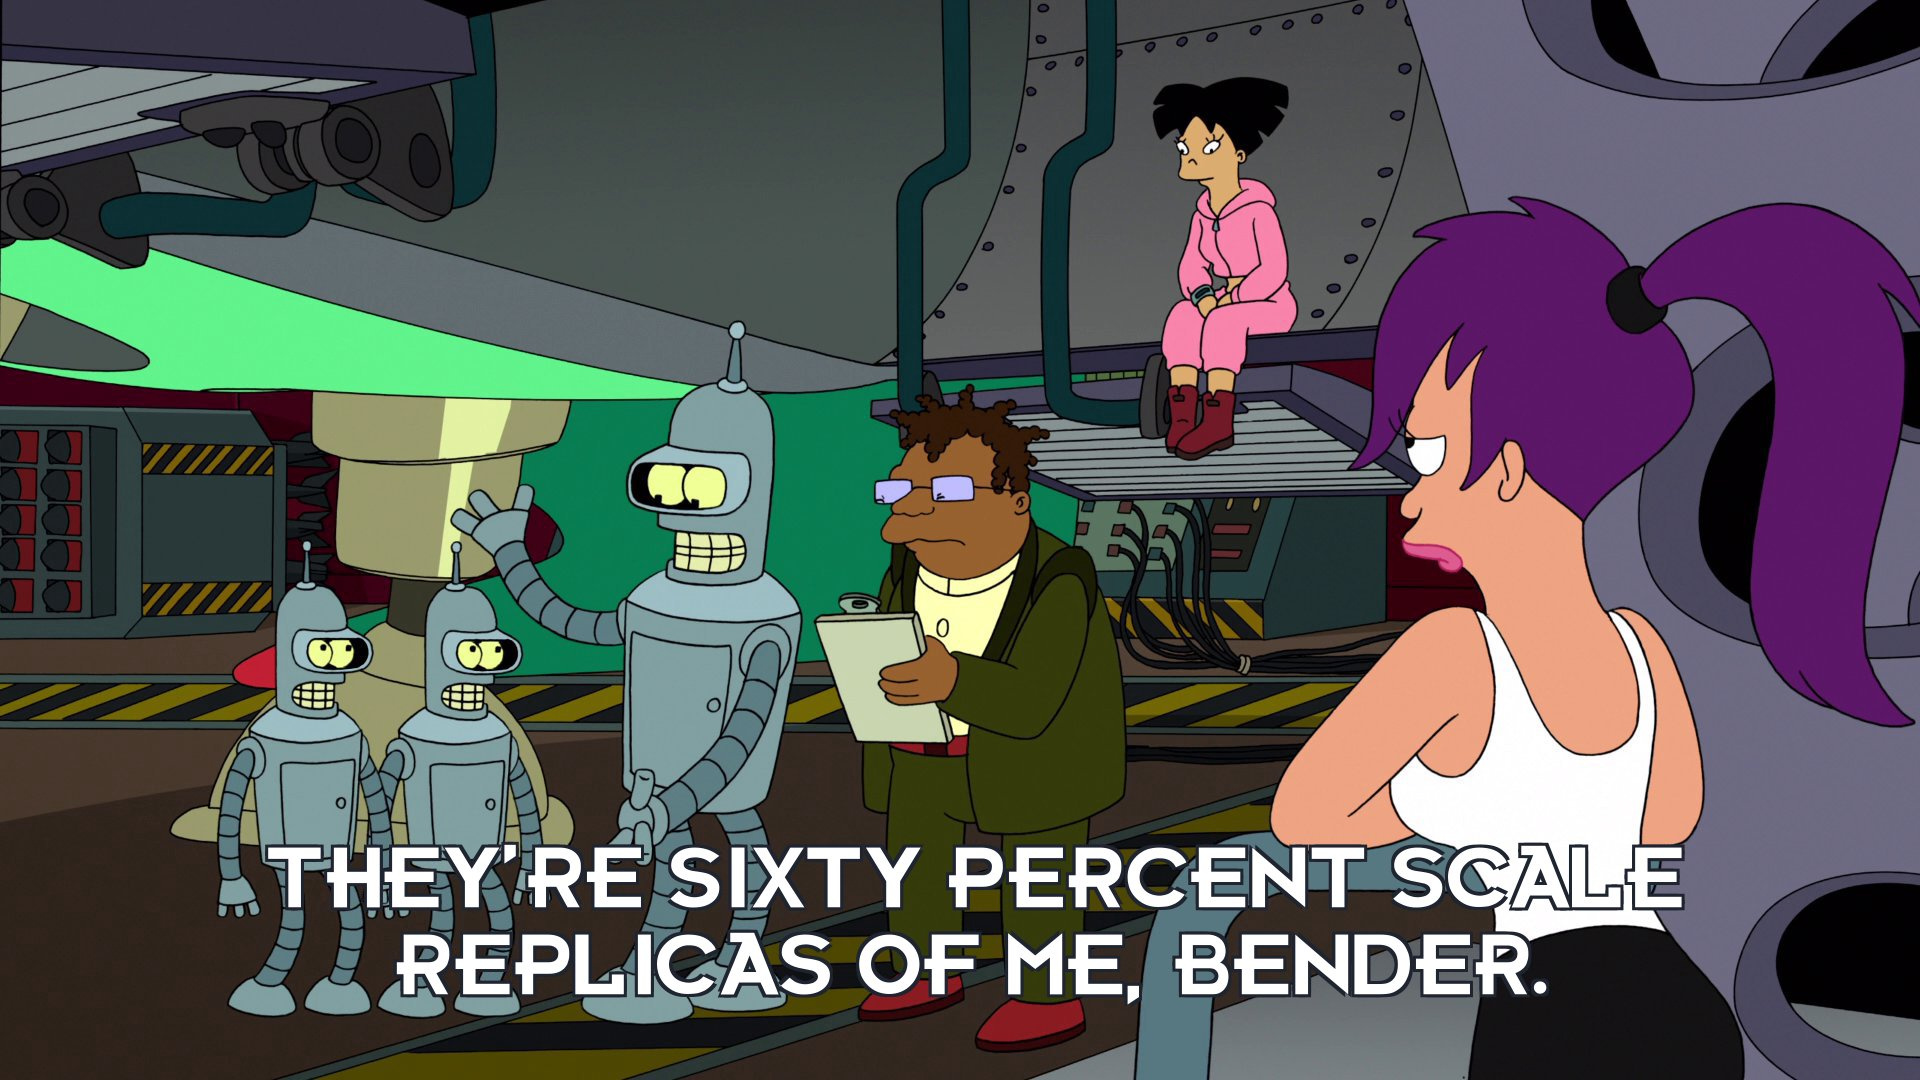 Bender Bending Rodriguez: They're sixty percent scale replicas of me, Bender.